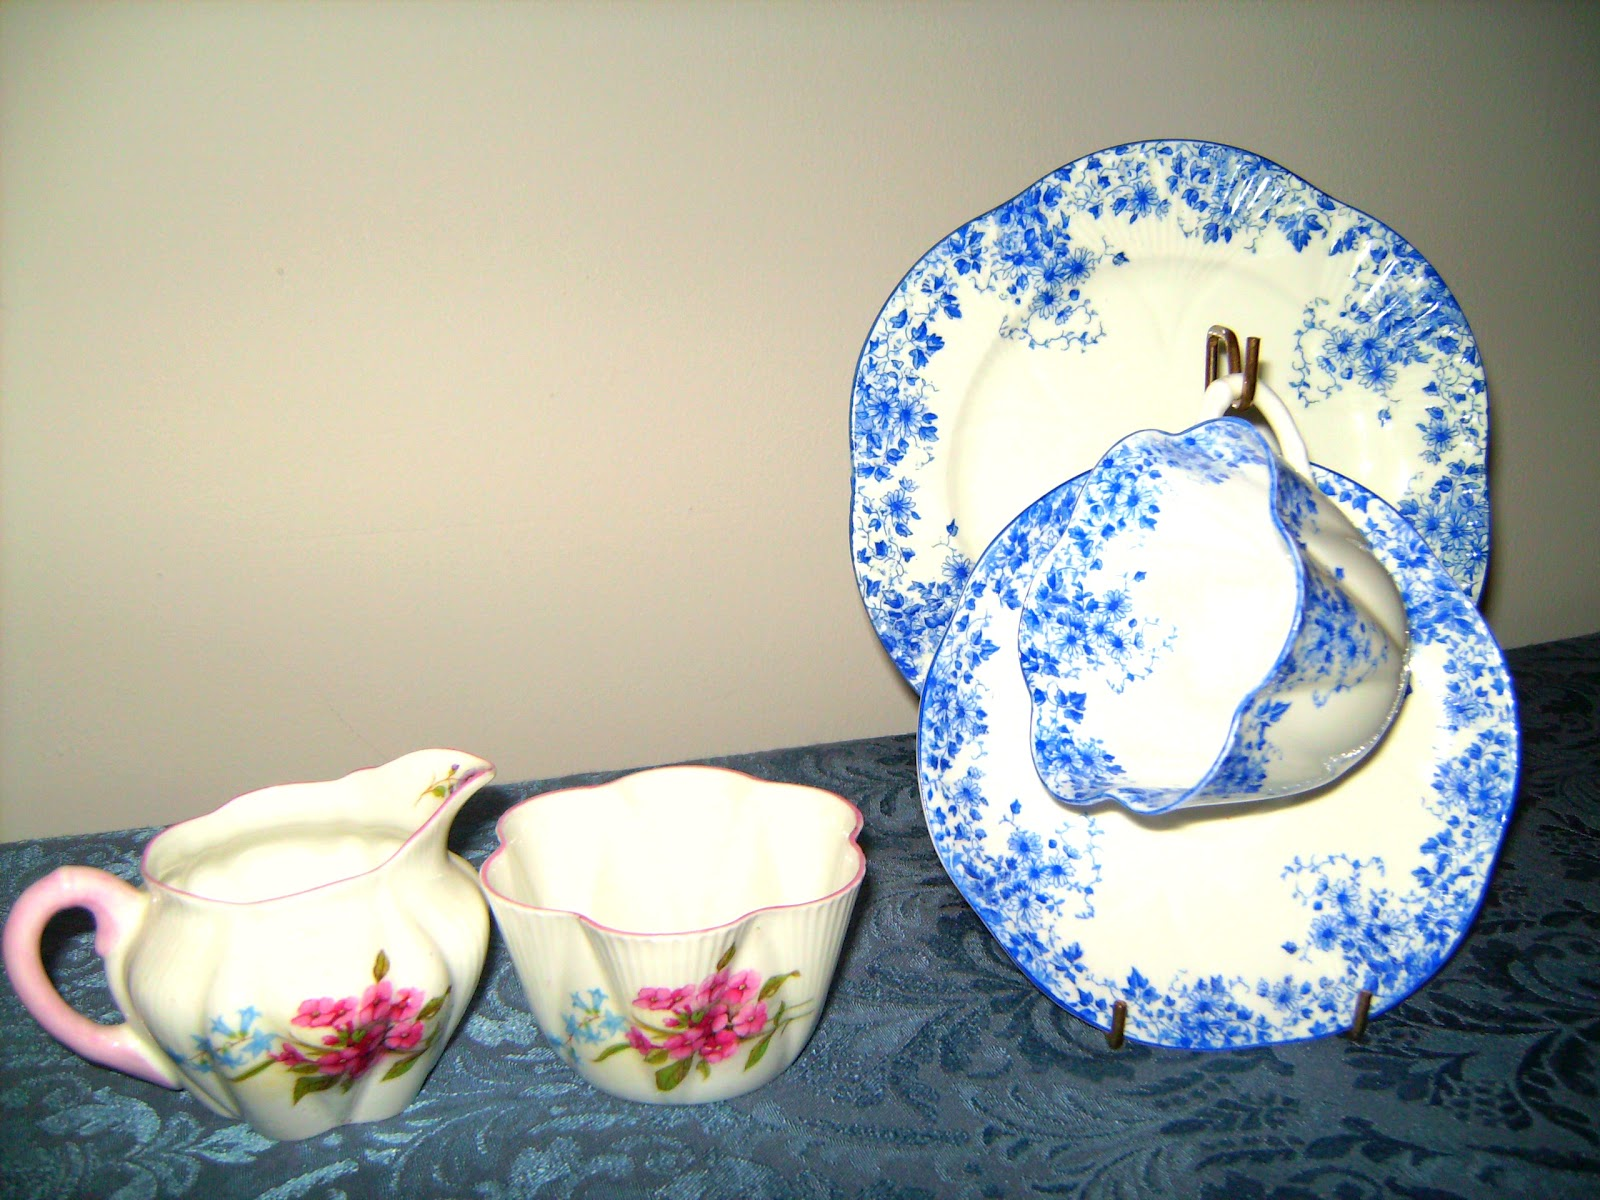 Relevant Tea Leaf The Cotswolds and Shelley China